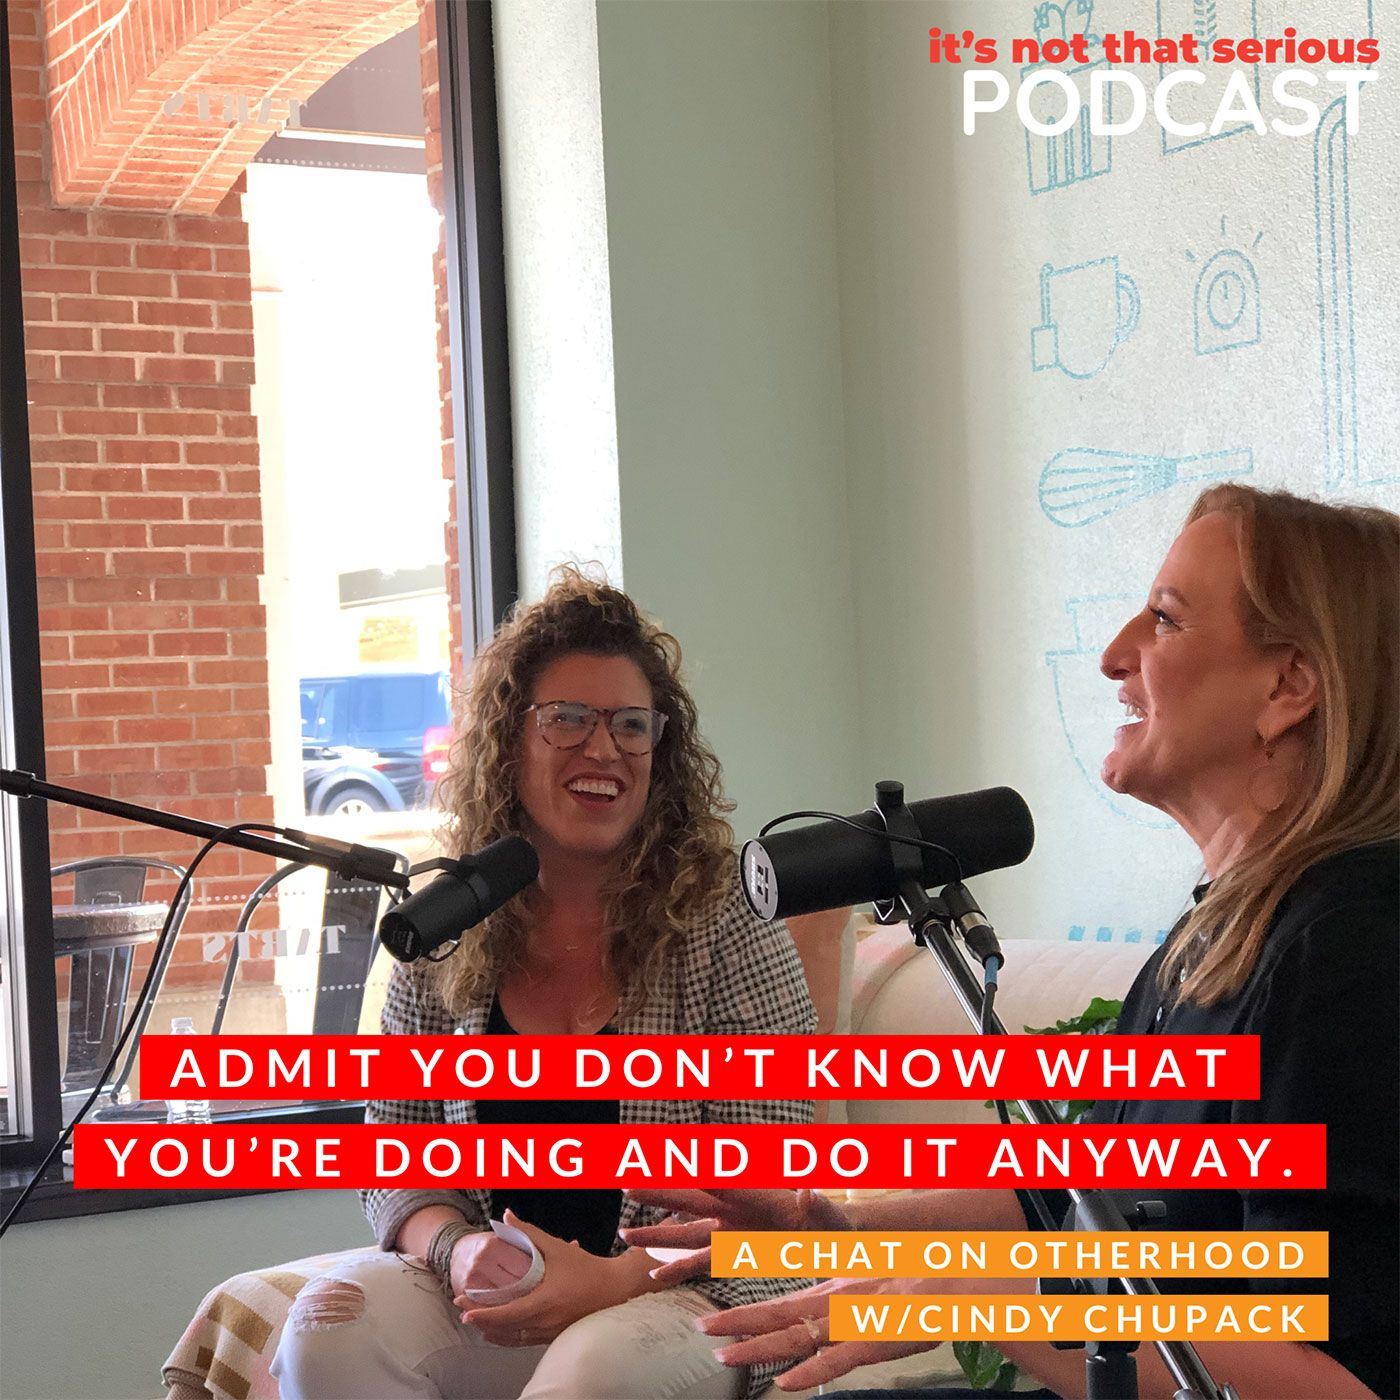 S2E5: Admit You Don't Know What You're Doing and Do It Anyway. A chat on Otherhood with Cindy Chupack